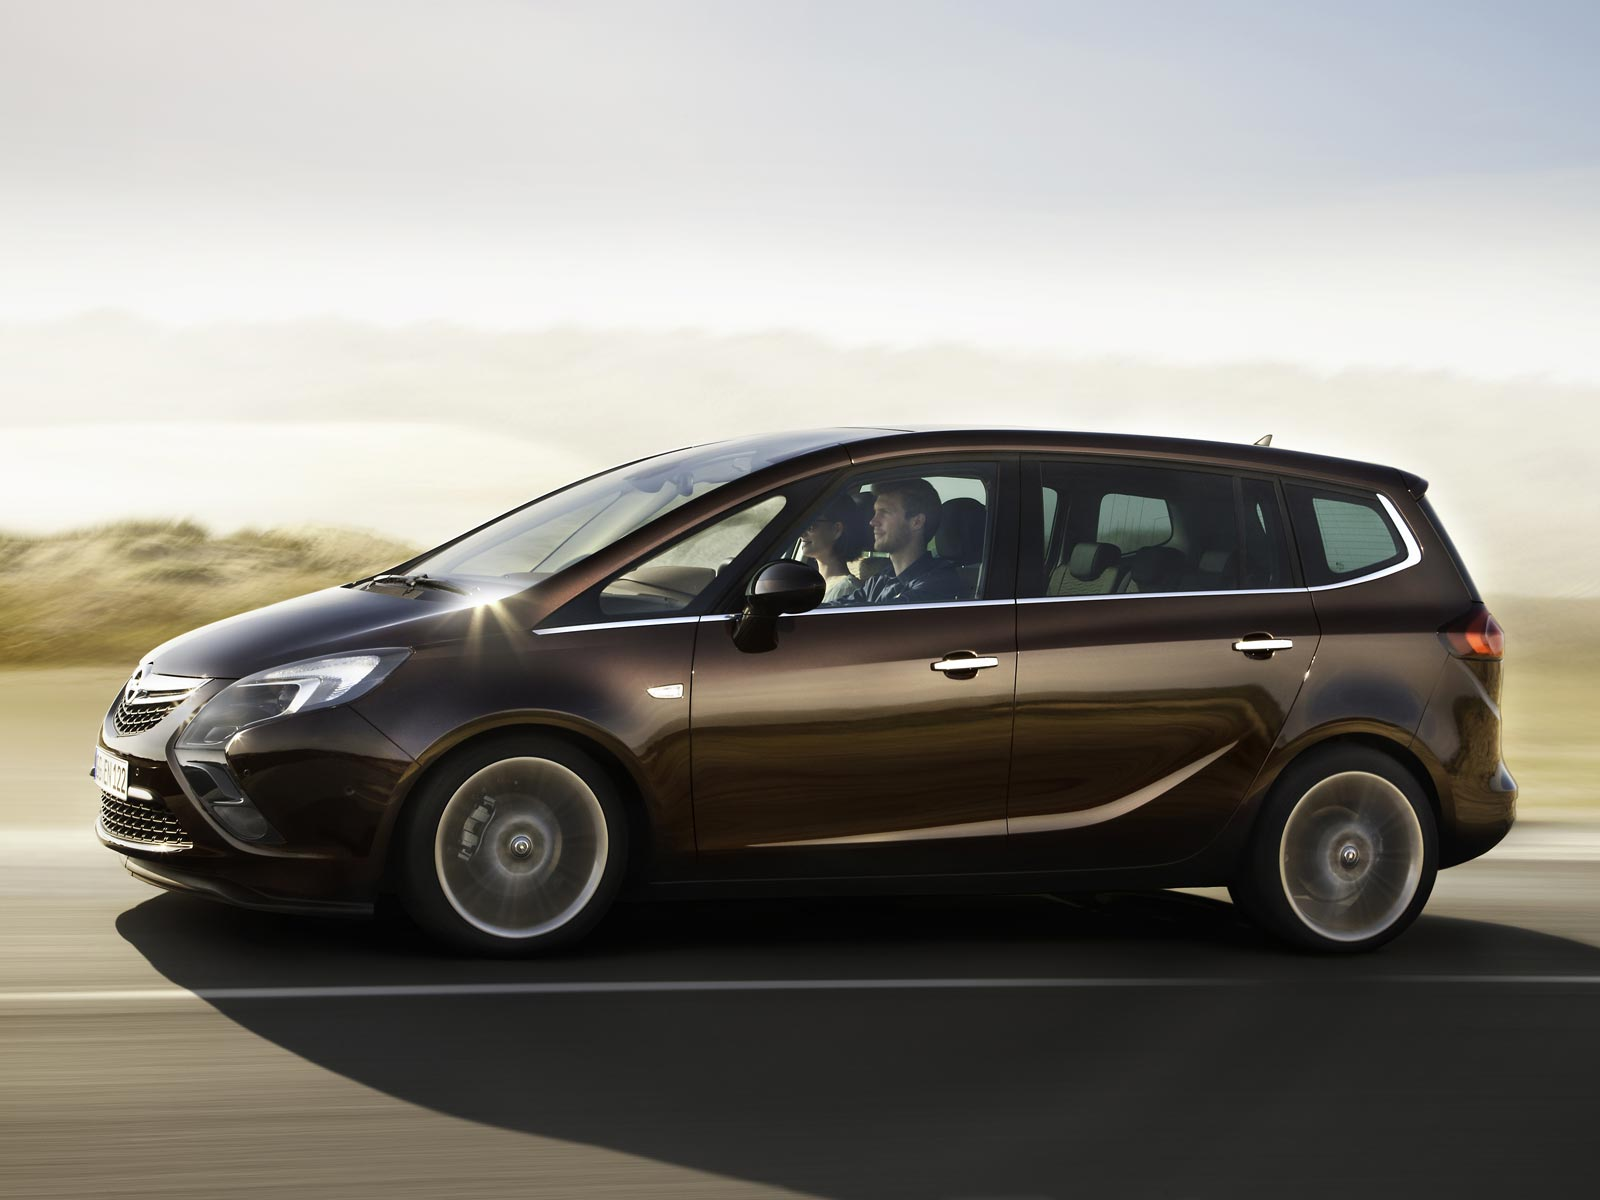 2019 Opel Zafira Tourer photo - 6